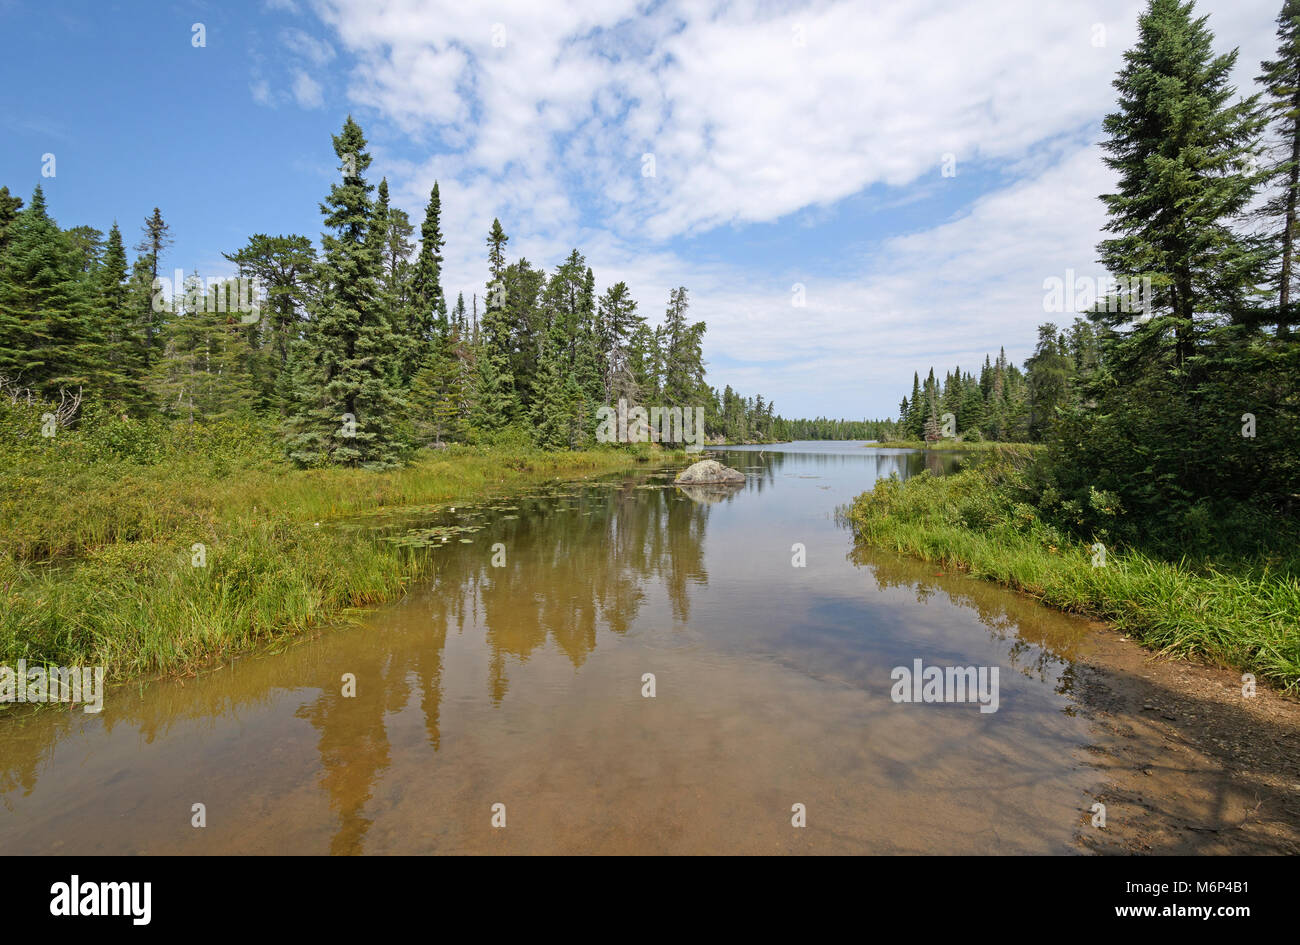 Calm Waters on a Quiet Inlet on Missing Link Lake in The Boundary Waters of Minnesota - Stock Image